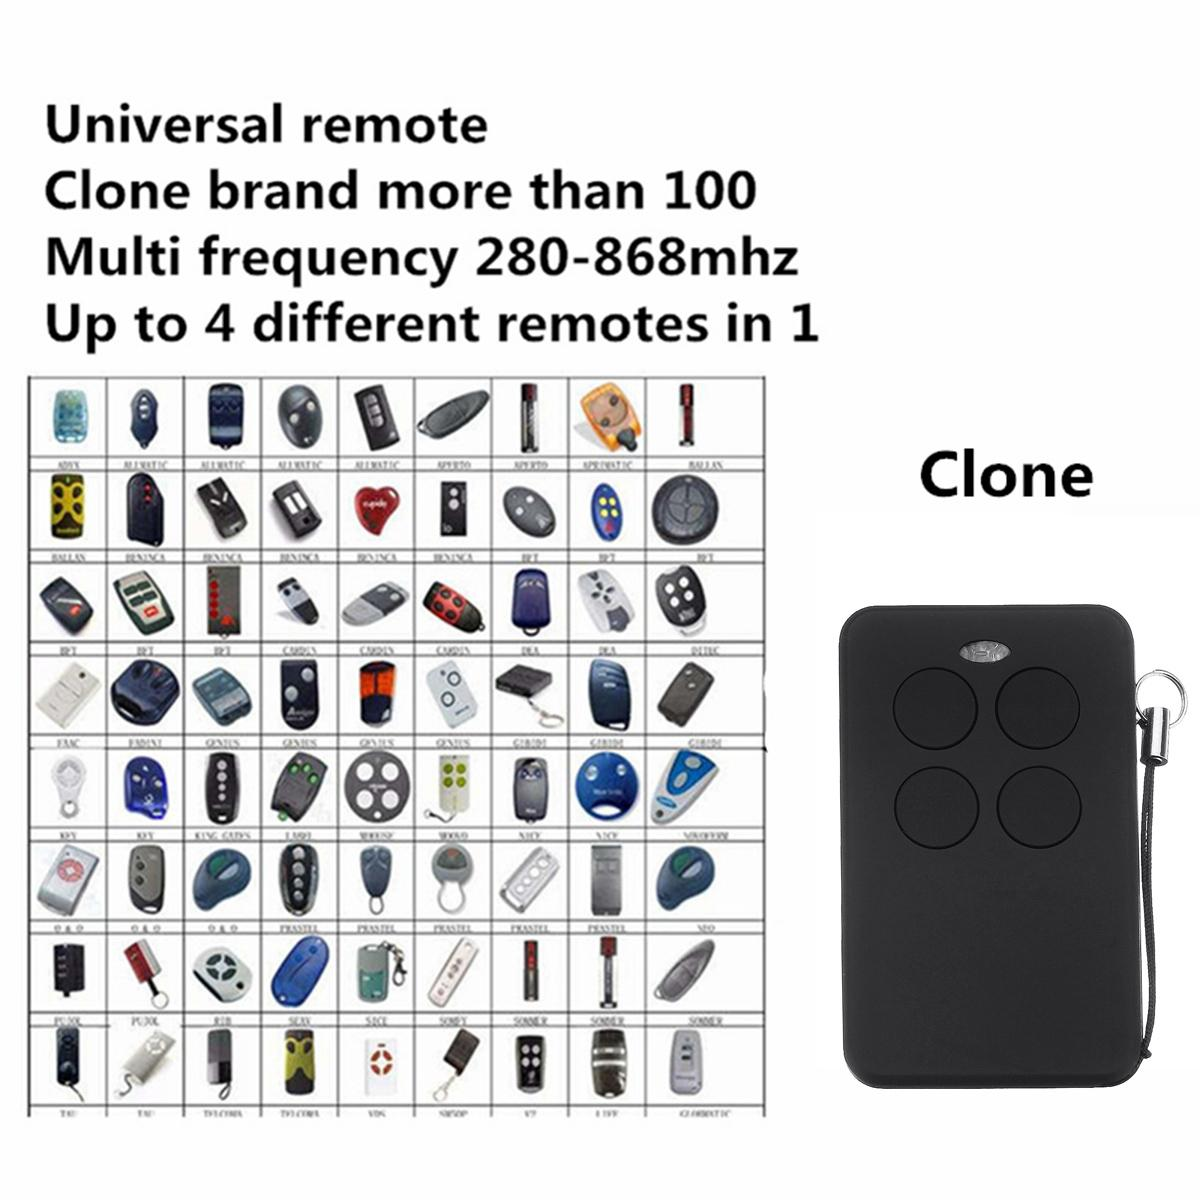 Universal Multi frequency copy 280-868mhz rolling code garage door remote control duplicator Fixed Rolling Code Garage Door v2 phoenix contr 47 433 92mhz rolling code remote control copy